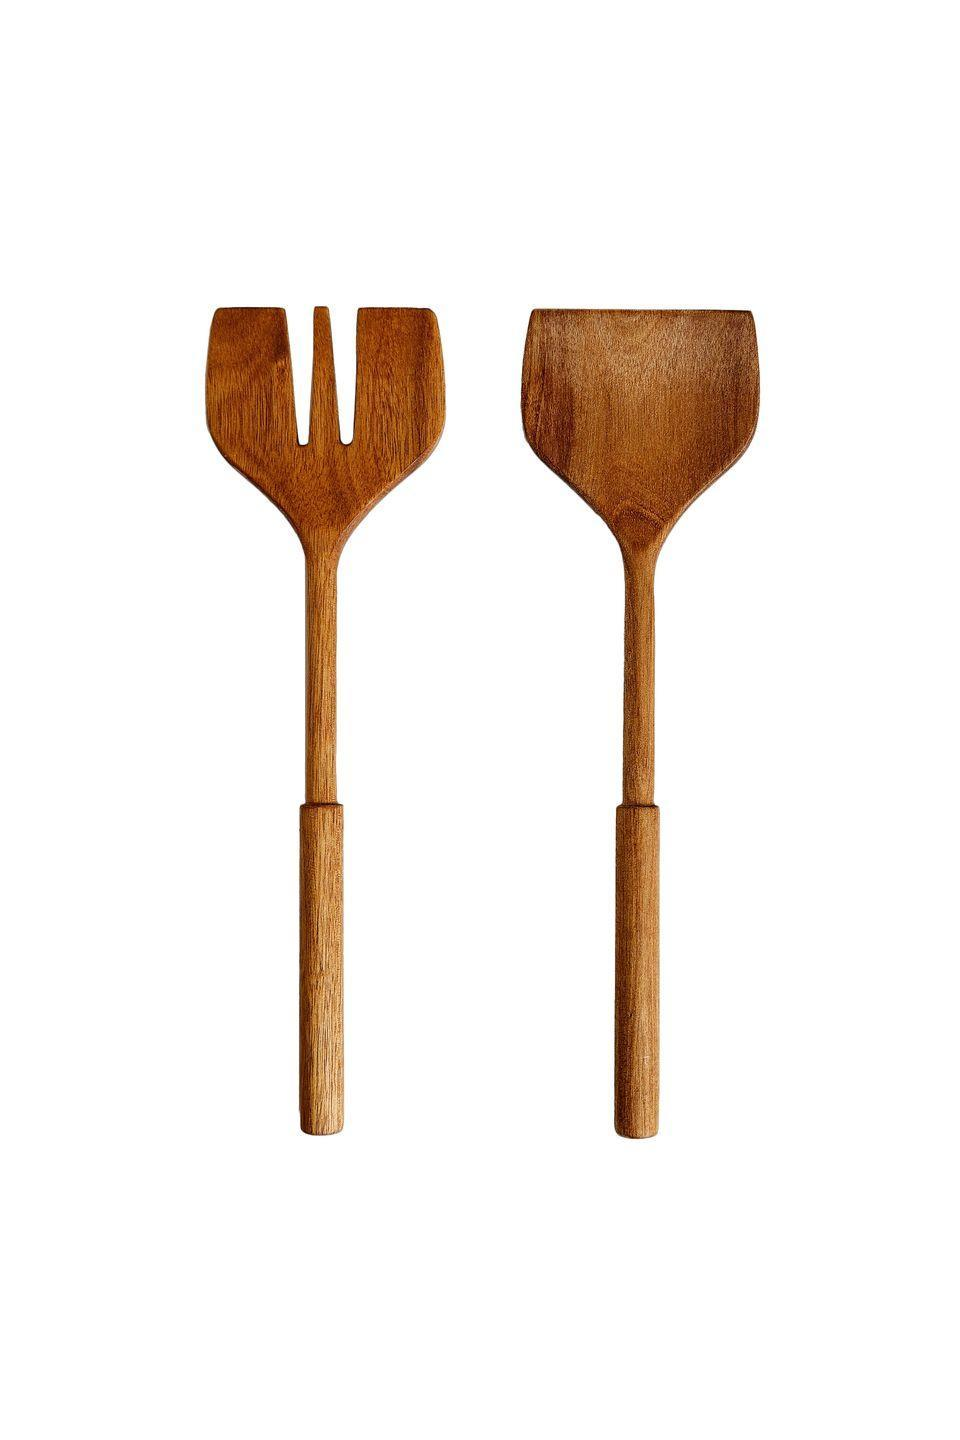 """<p>The distinct handle and blunted edge of these shapely servers grants them a contemporary feel. Made from acacia wood, which has a beautiful natural grain, they should serve you well for years to come. £17.99, <a href=""""https://www.zarahome.com/gb/wooden-servers-pack-of-2-l41212320"""" rel=""""nofollow noopener"""" target=""""_blank"""" data-ylk=""""slk:zarahome.com"""" class=""""link rapid-noclick-resp"""">zarahome.com</a></p>"""